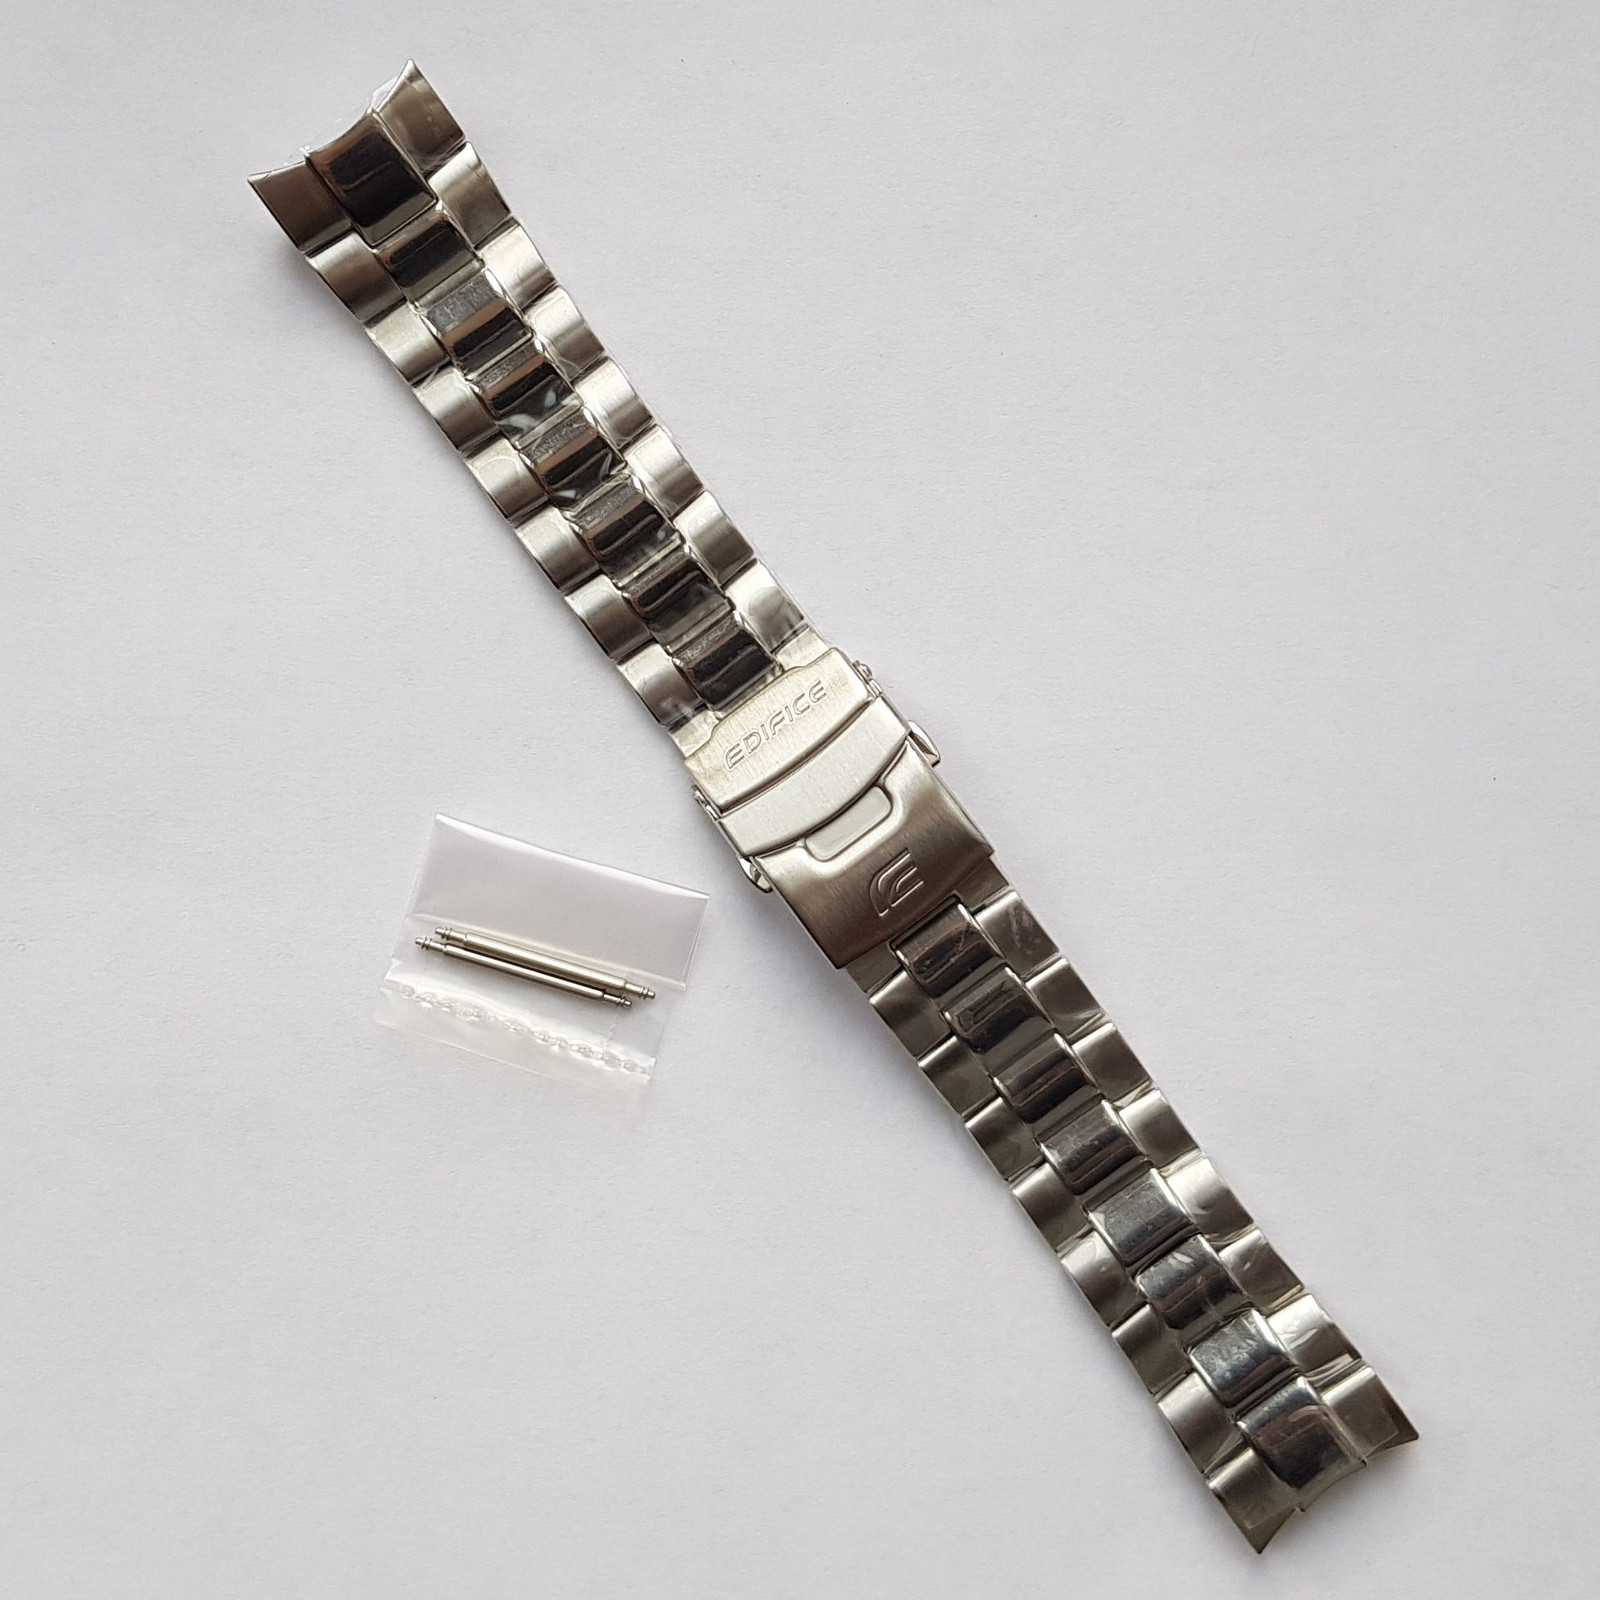 Primary image for Genuine Replacement Watch Band 22mm Stainless Steel Bracelet Casio EMA-100D-1A1